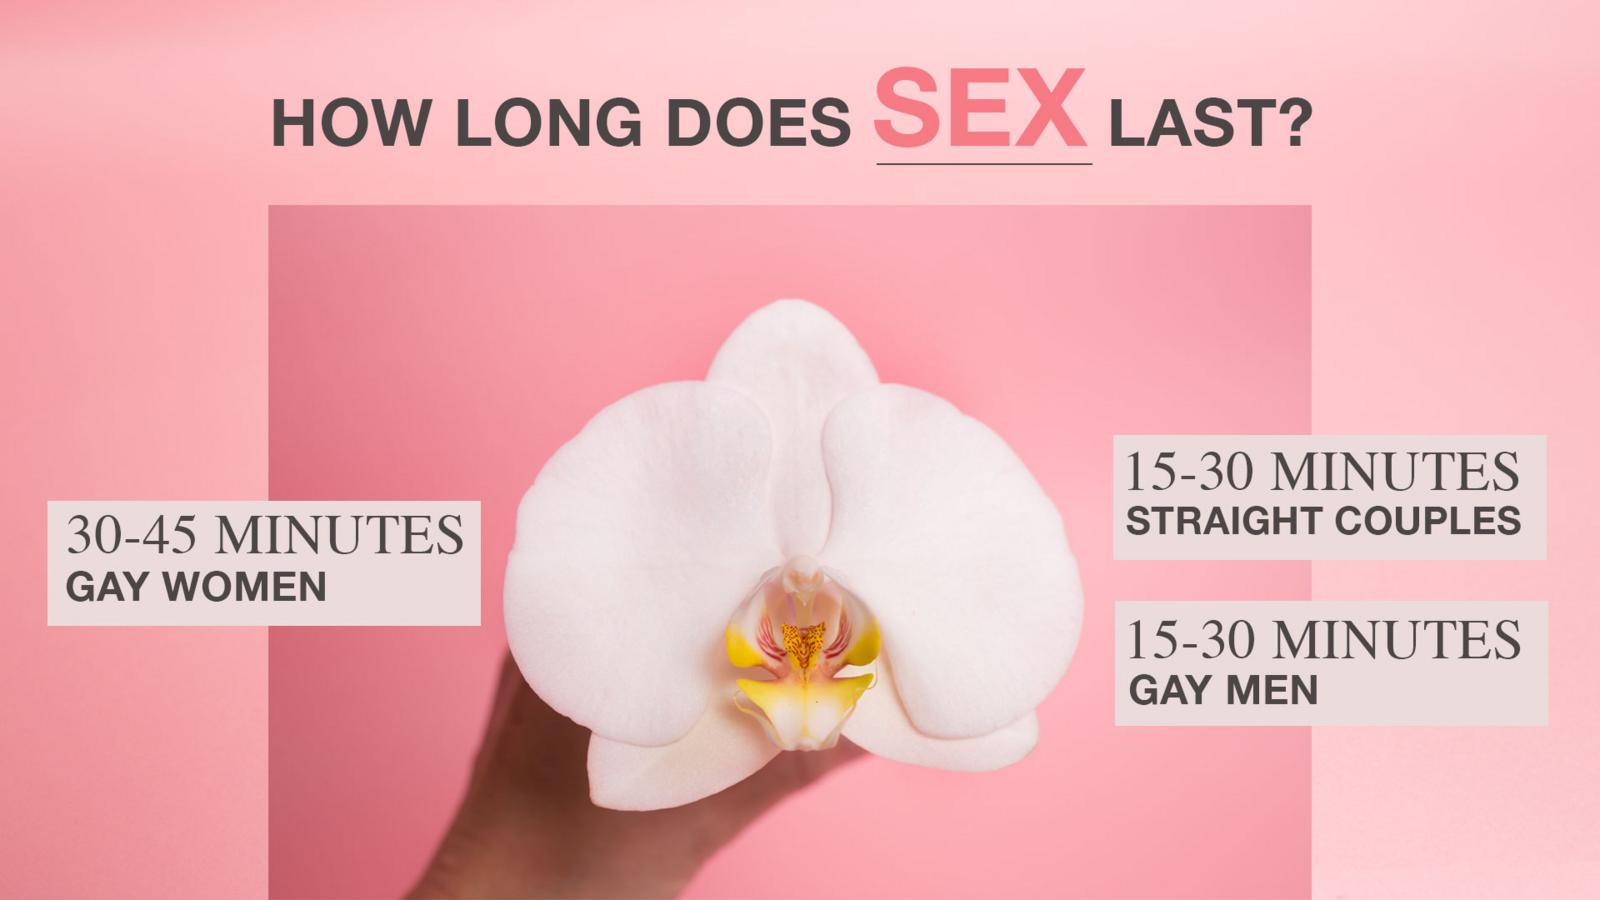 How long does normal sex last